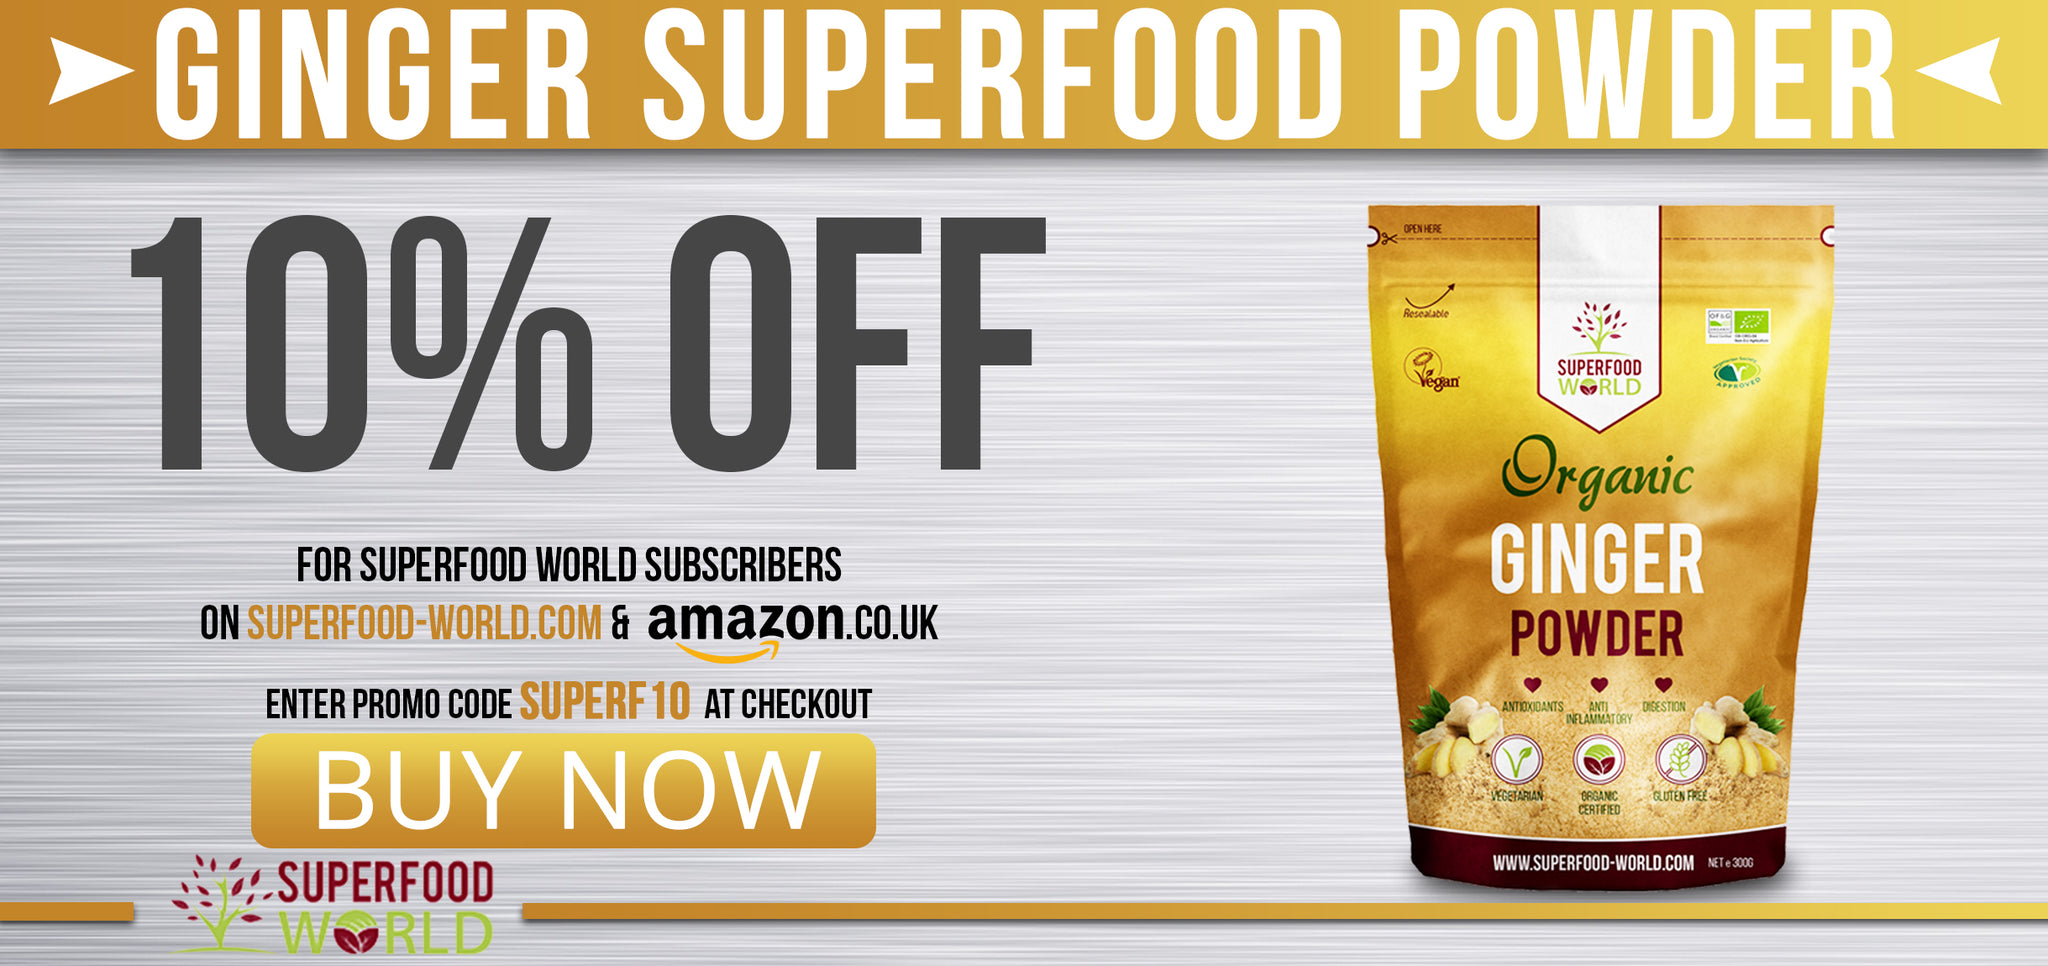 Buy Ginger Powder from Superfood World Today!